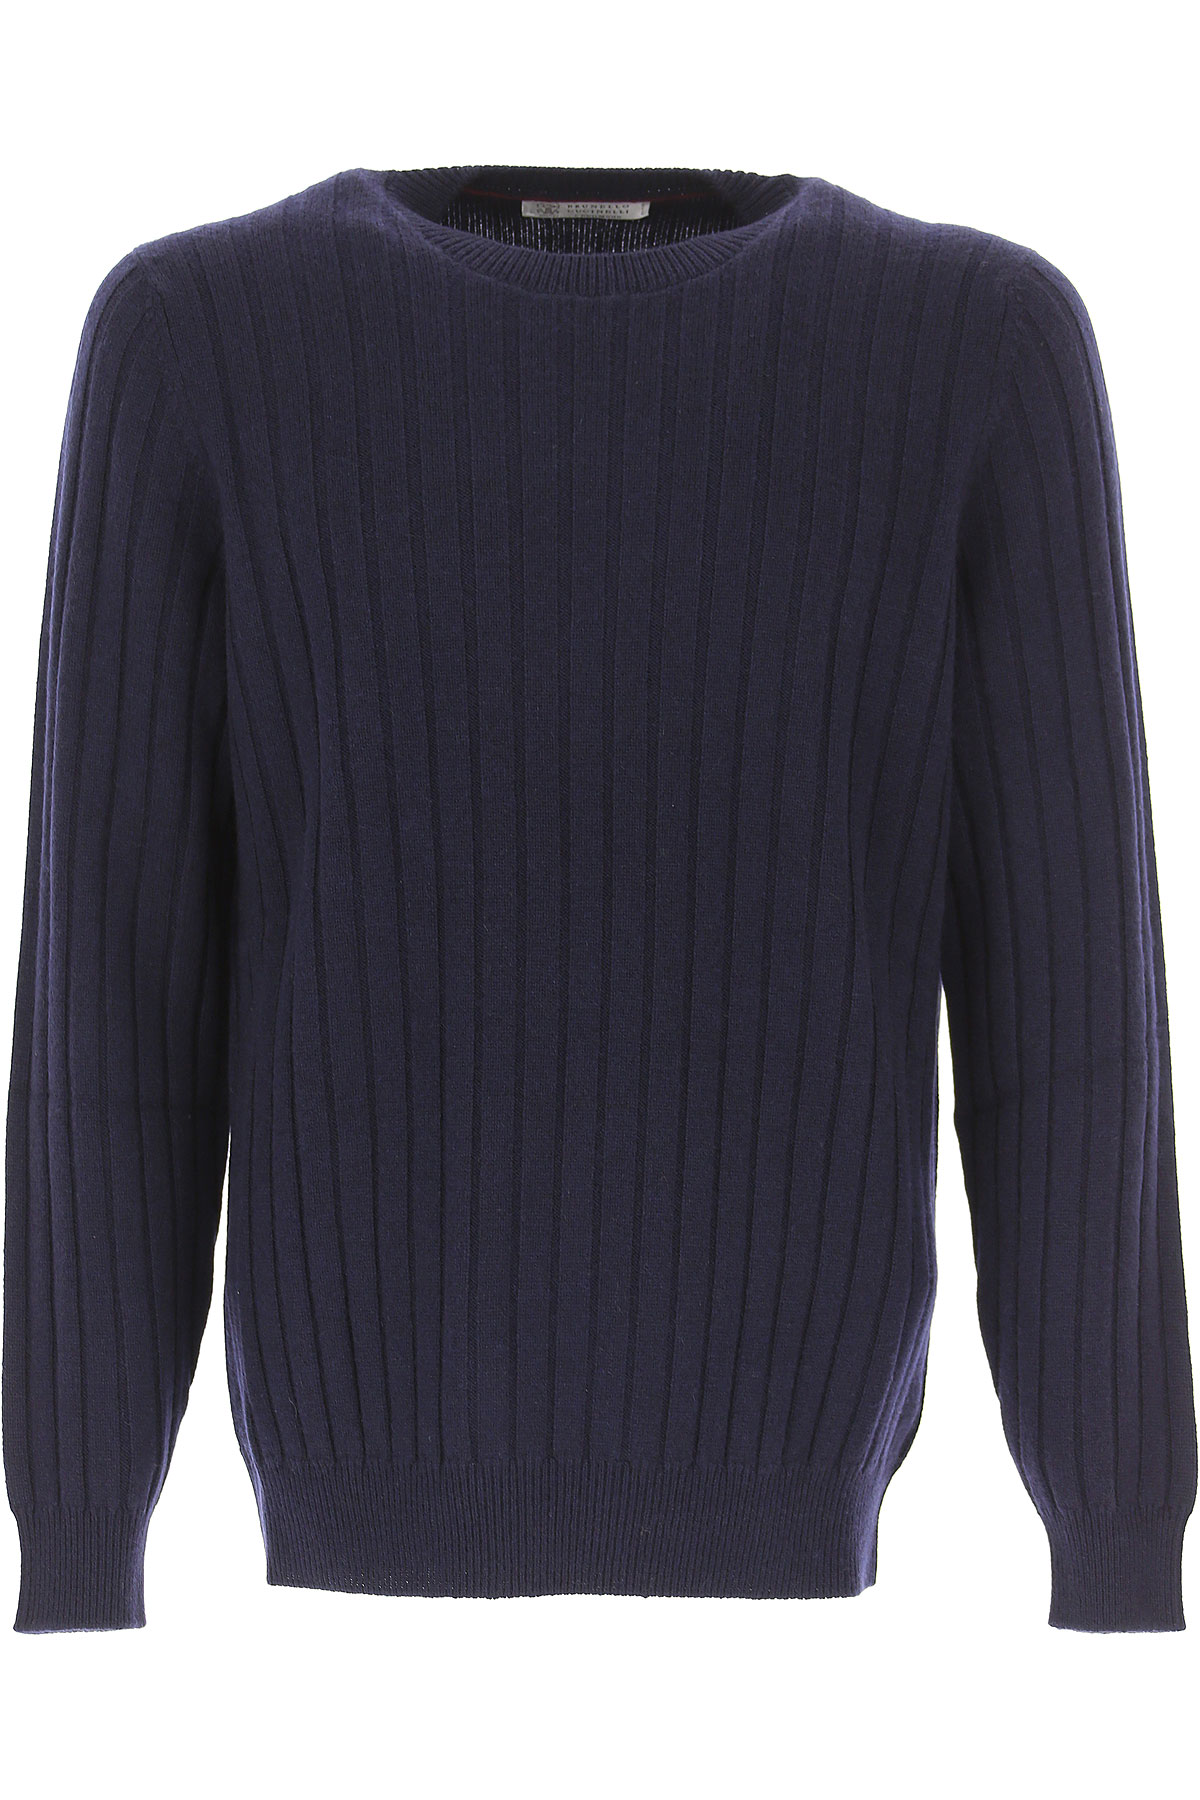 Brunello Cucinelli Sweater for Men Jumper, Navy Blue, Cashemere, 2019, L XL